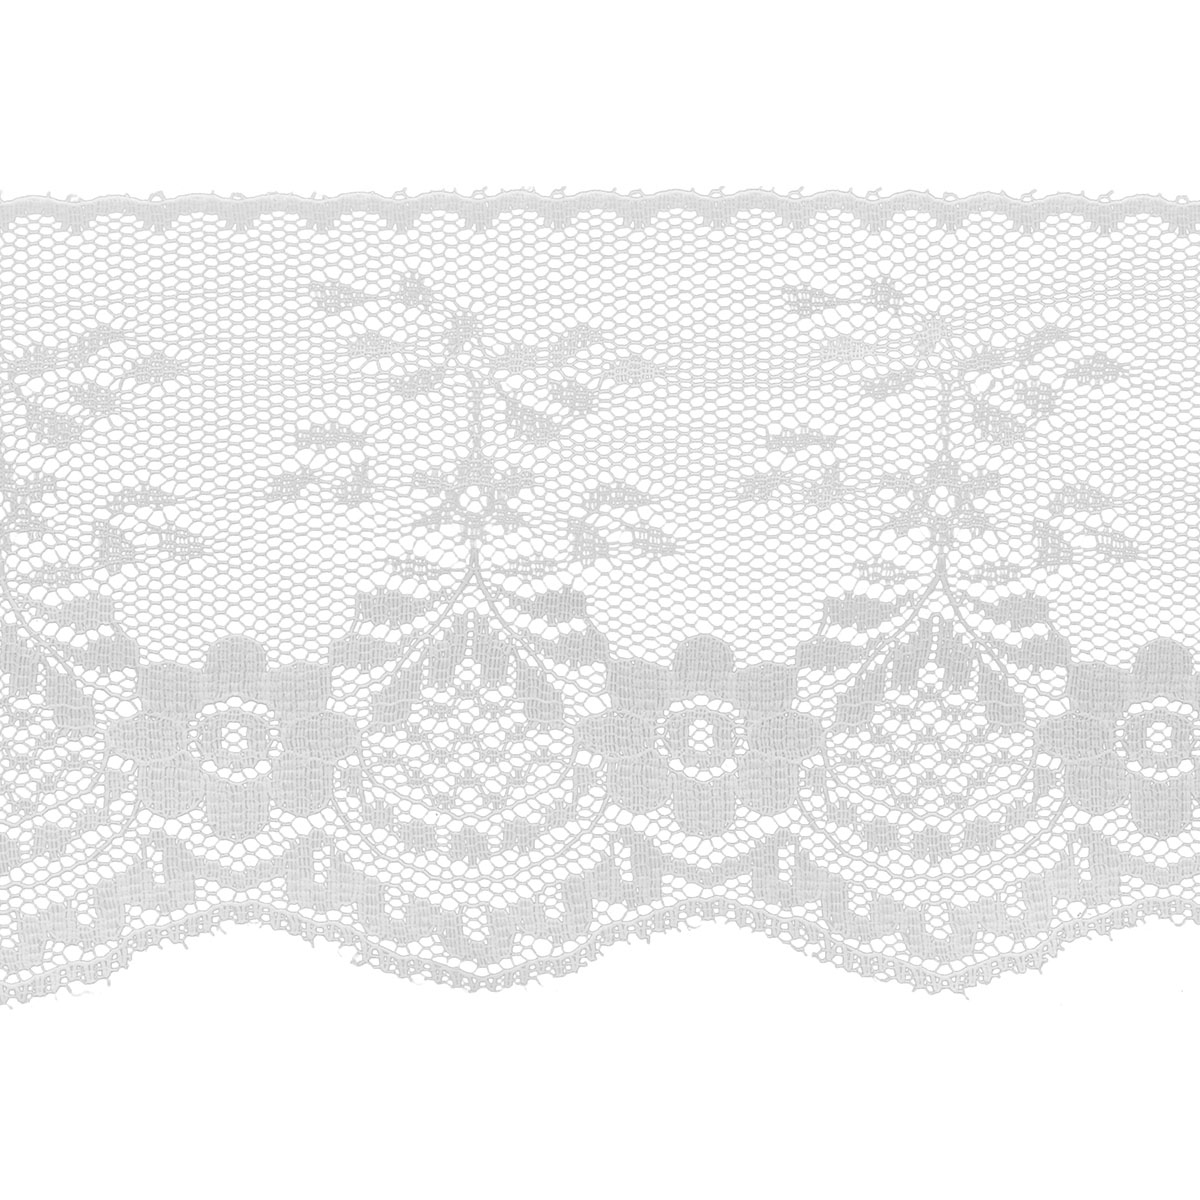 "Fancy Lace 3 - 1/2"" X 12yd - White"